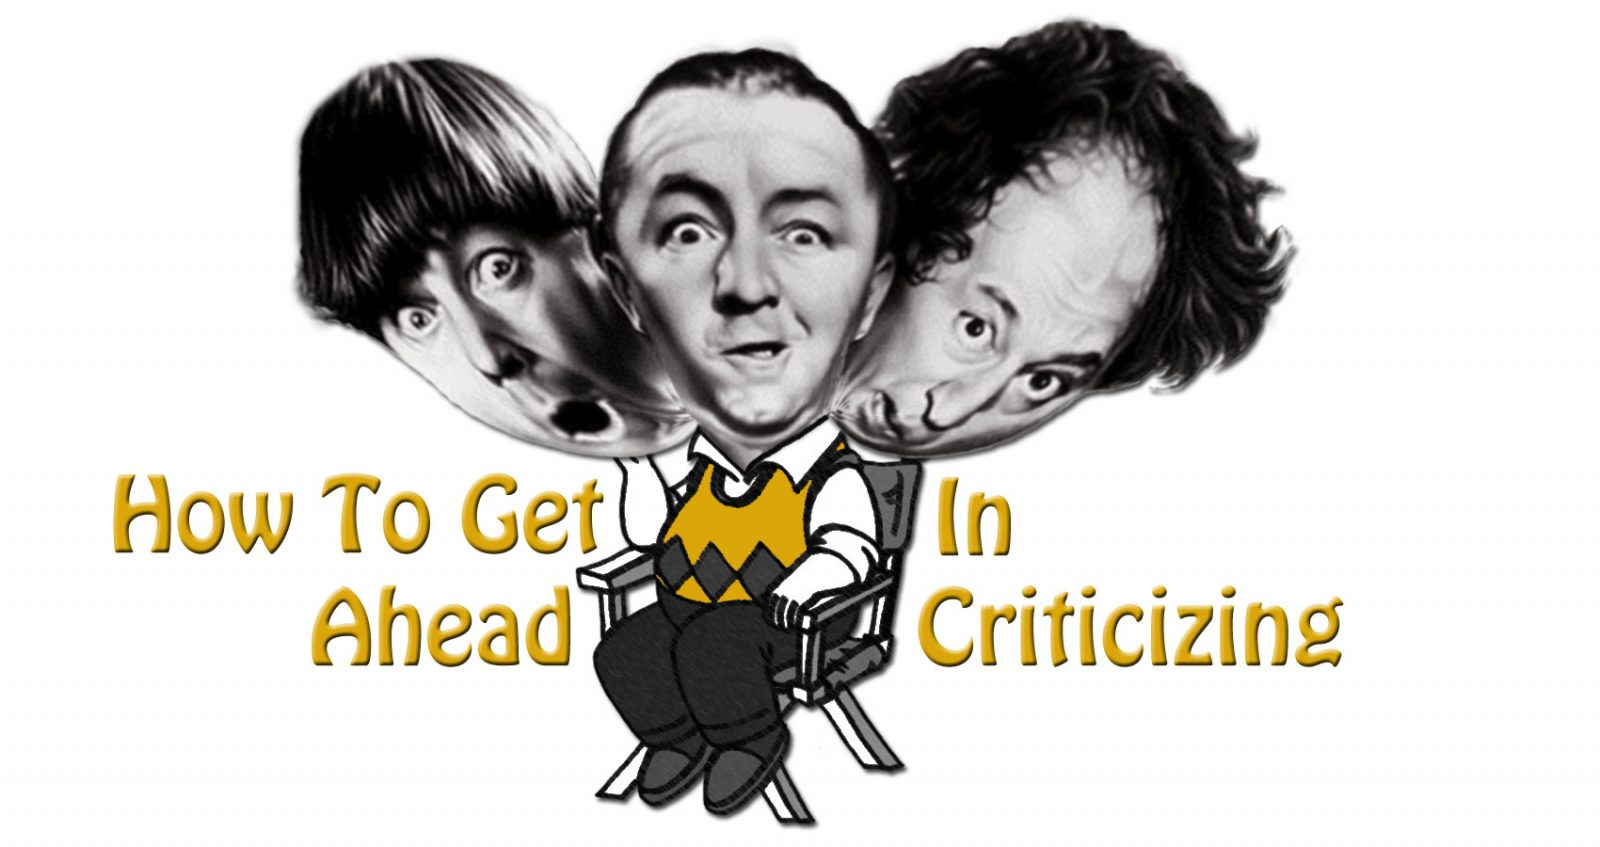 How To Get Ahead In Criticizing